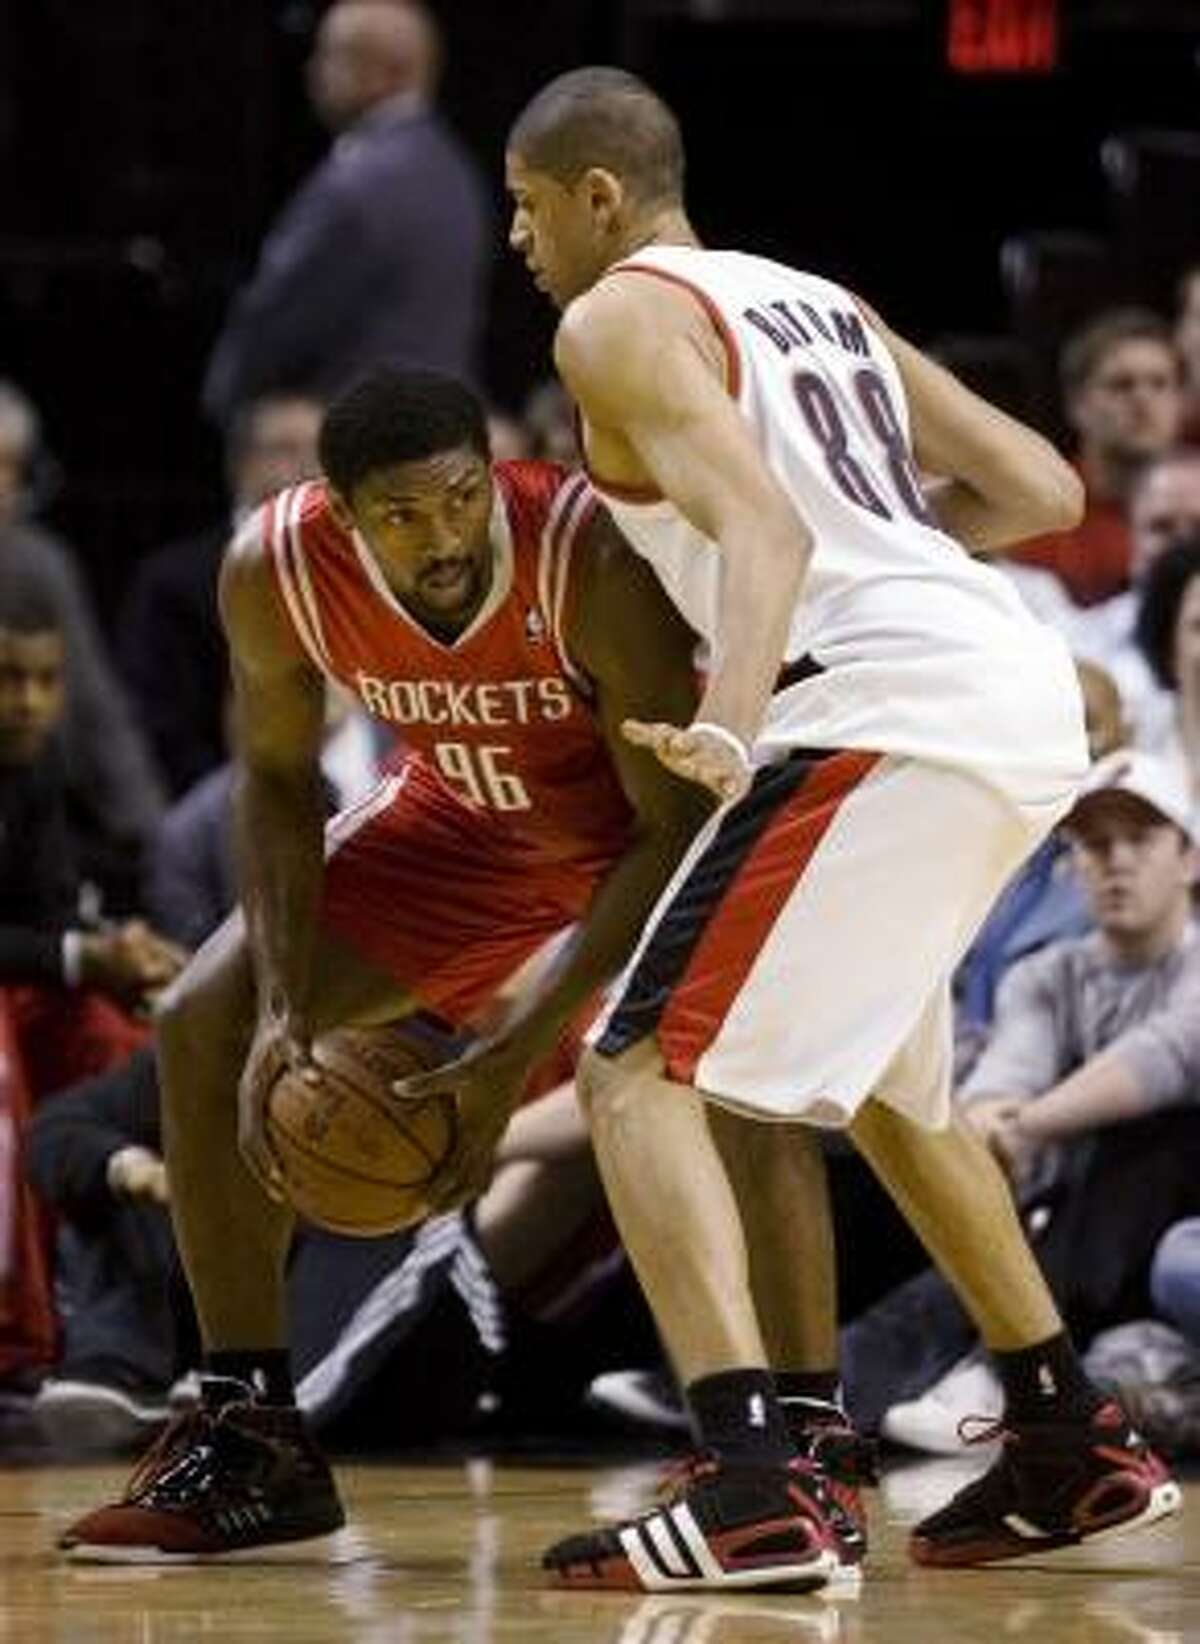 Rockets forward Ron Artest, left, looks for room to maneuver against Portland Trail Blazers forward Nicolas Batum during the first half.